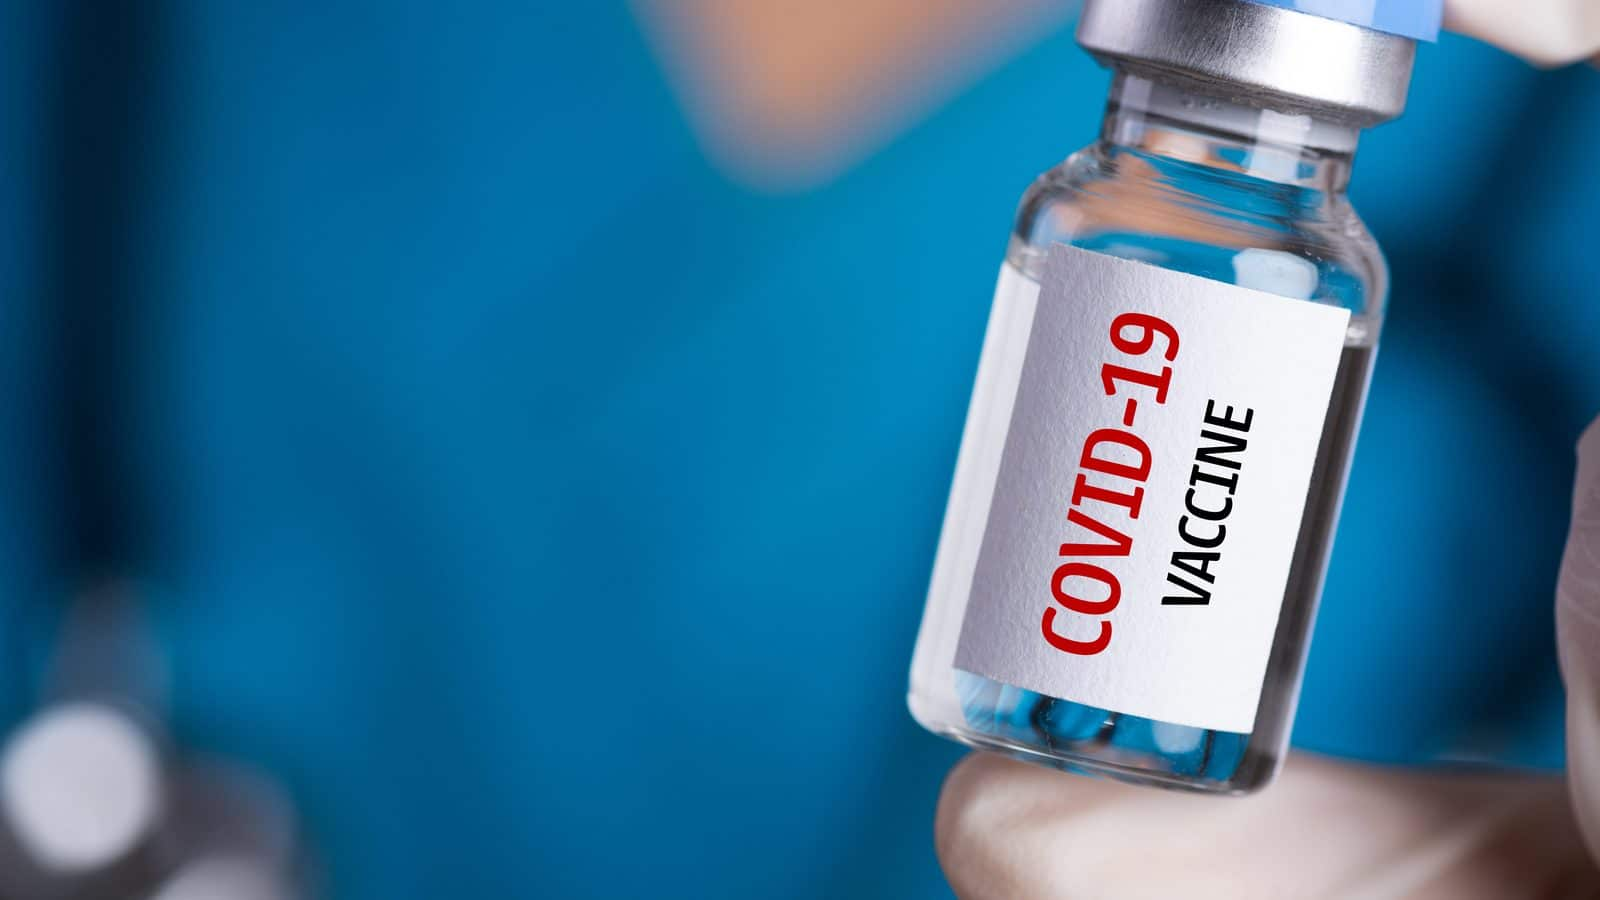 COVID 19 vaccines and fake certificates now sold on the darknet